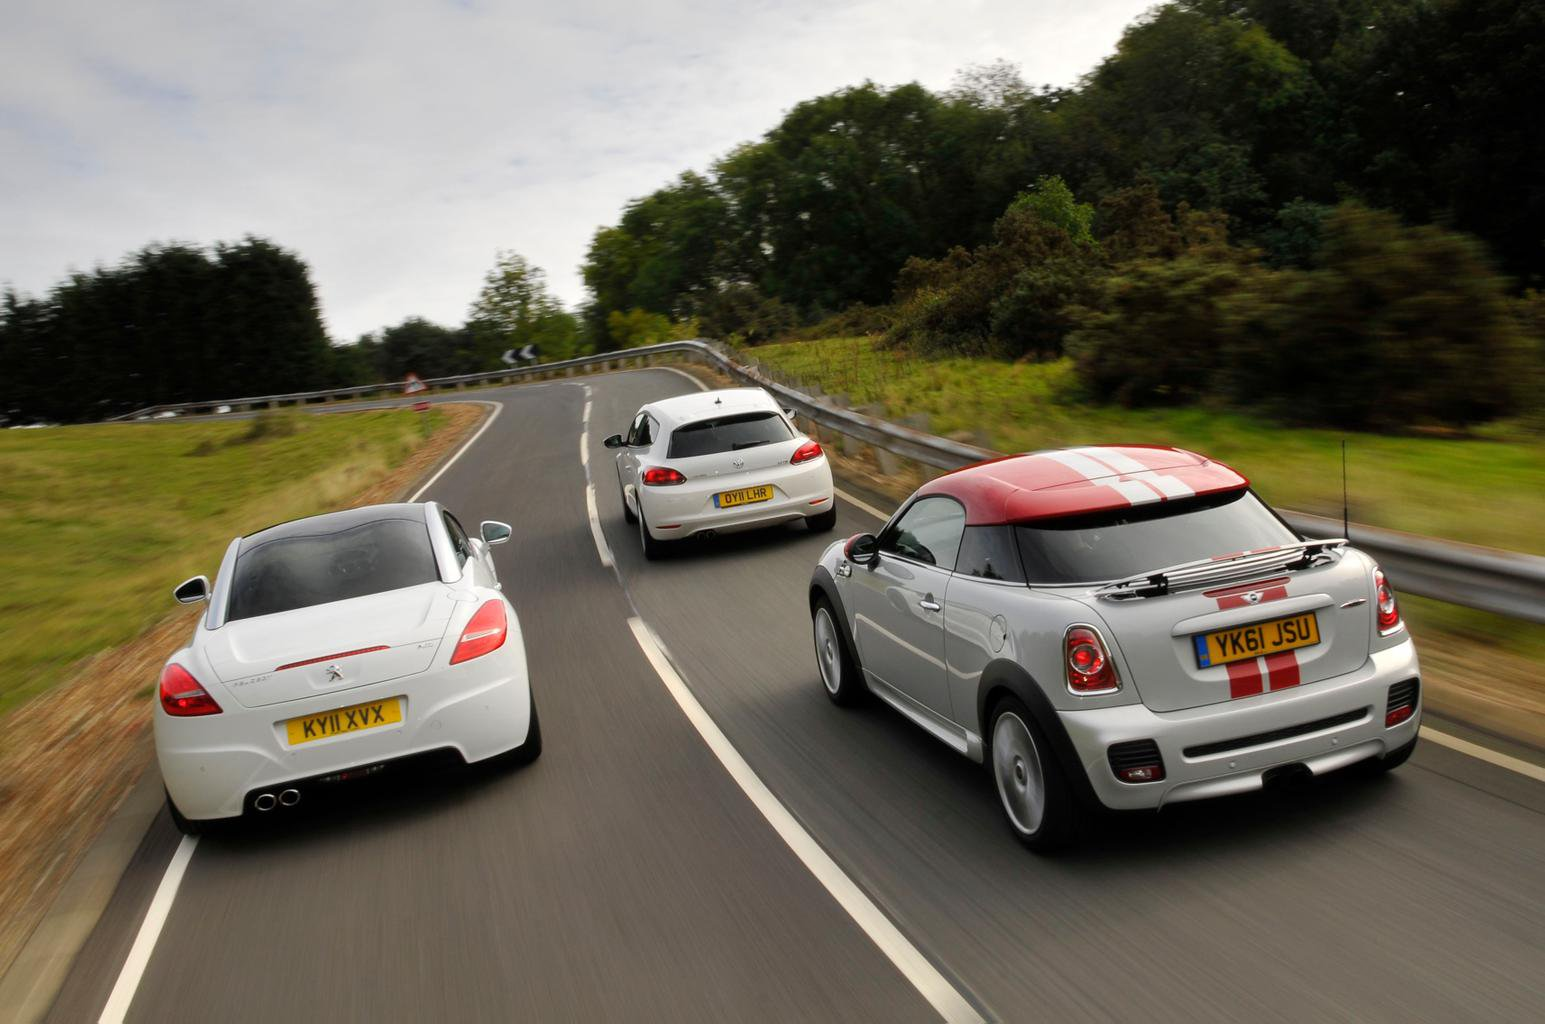 Used test – sporty coupés: Mini Coupe vs Peugeot RCZ vs Volkswagen Scirocco